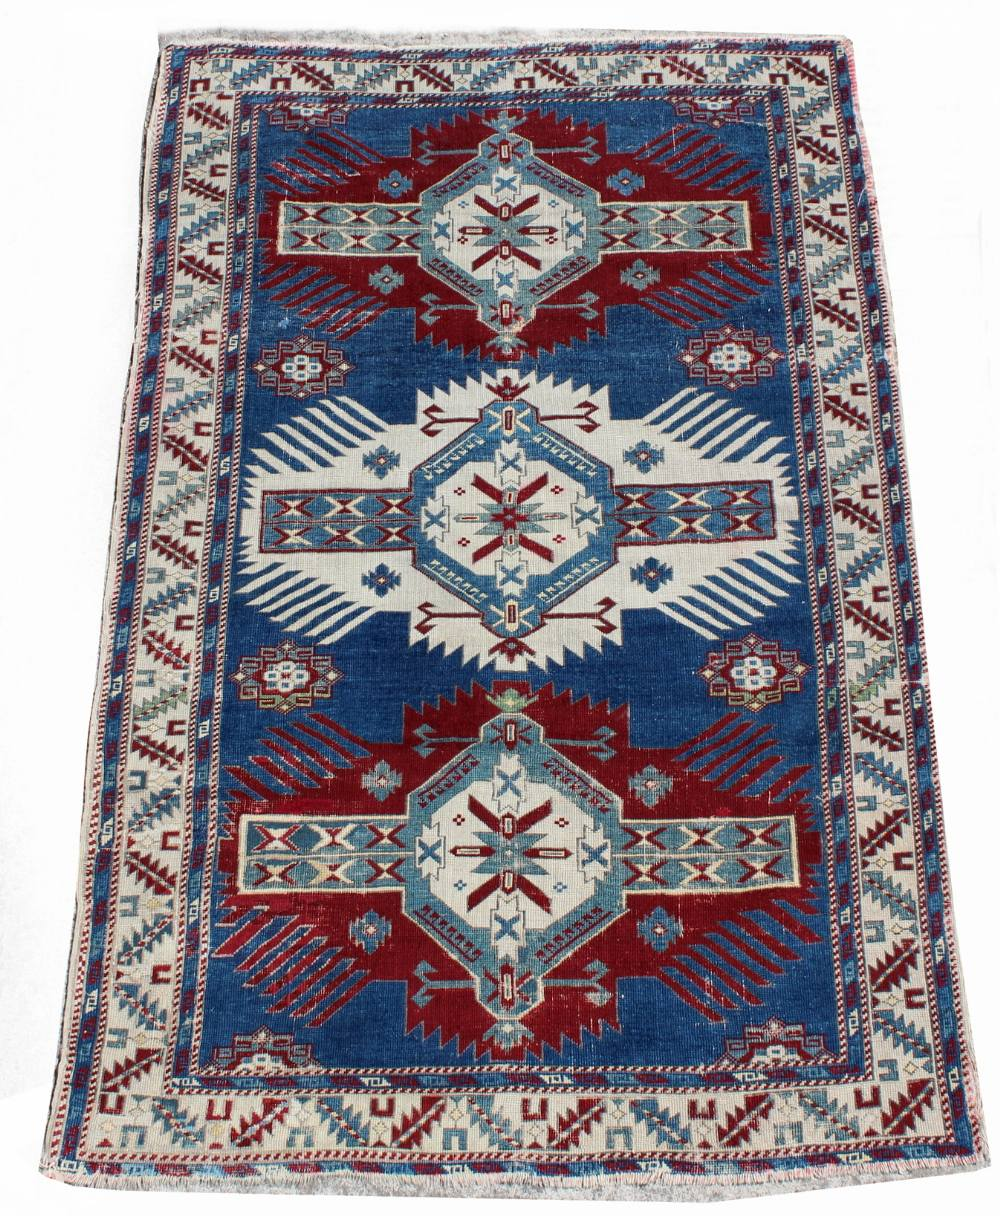 Lot 40 - Property of a deceased estate - an early 20th century Caucasian Kazak rug, with navy field, 76 by